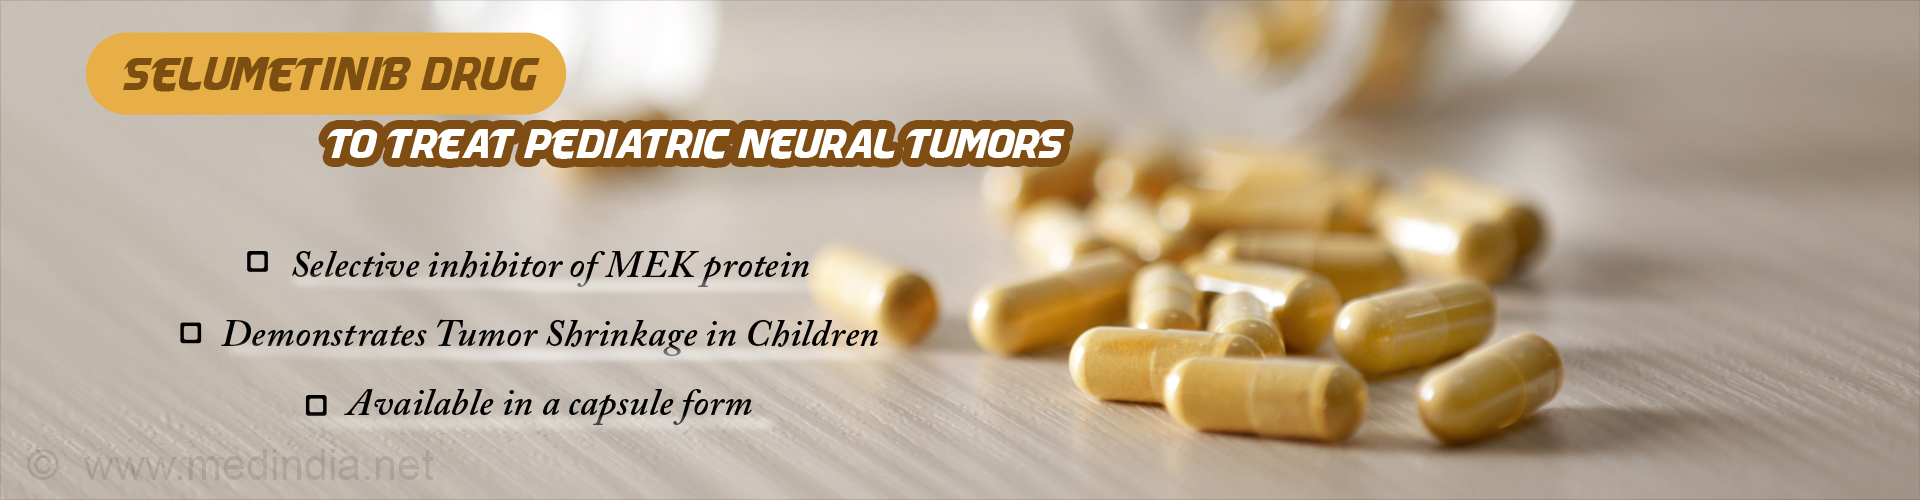 Selumetinib Drug Found to Shrink Pediatric Neural Tumors